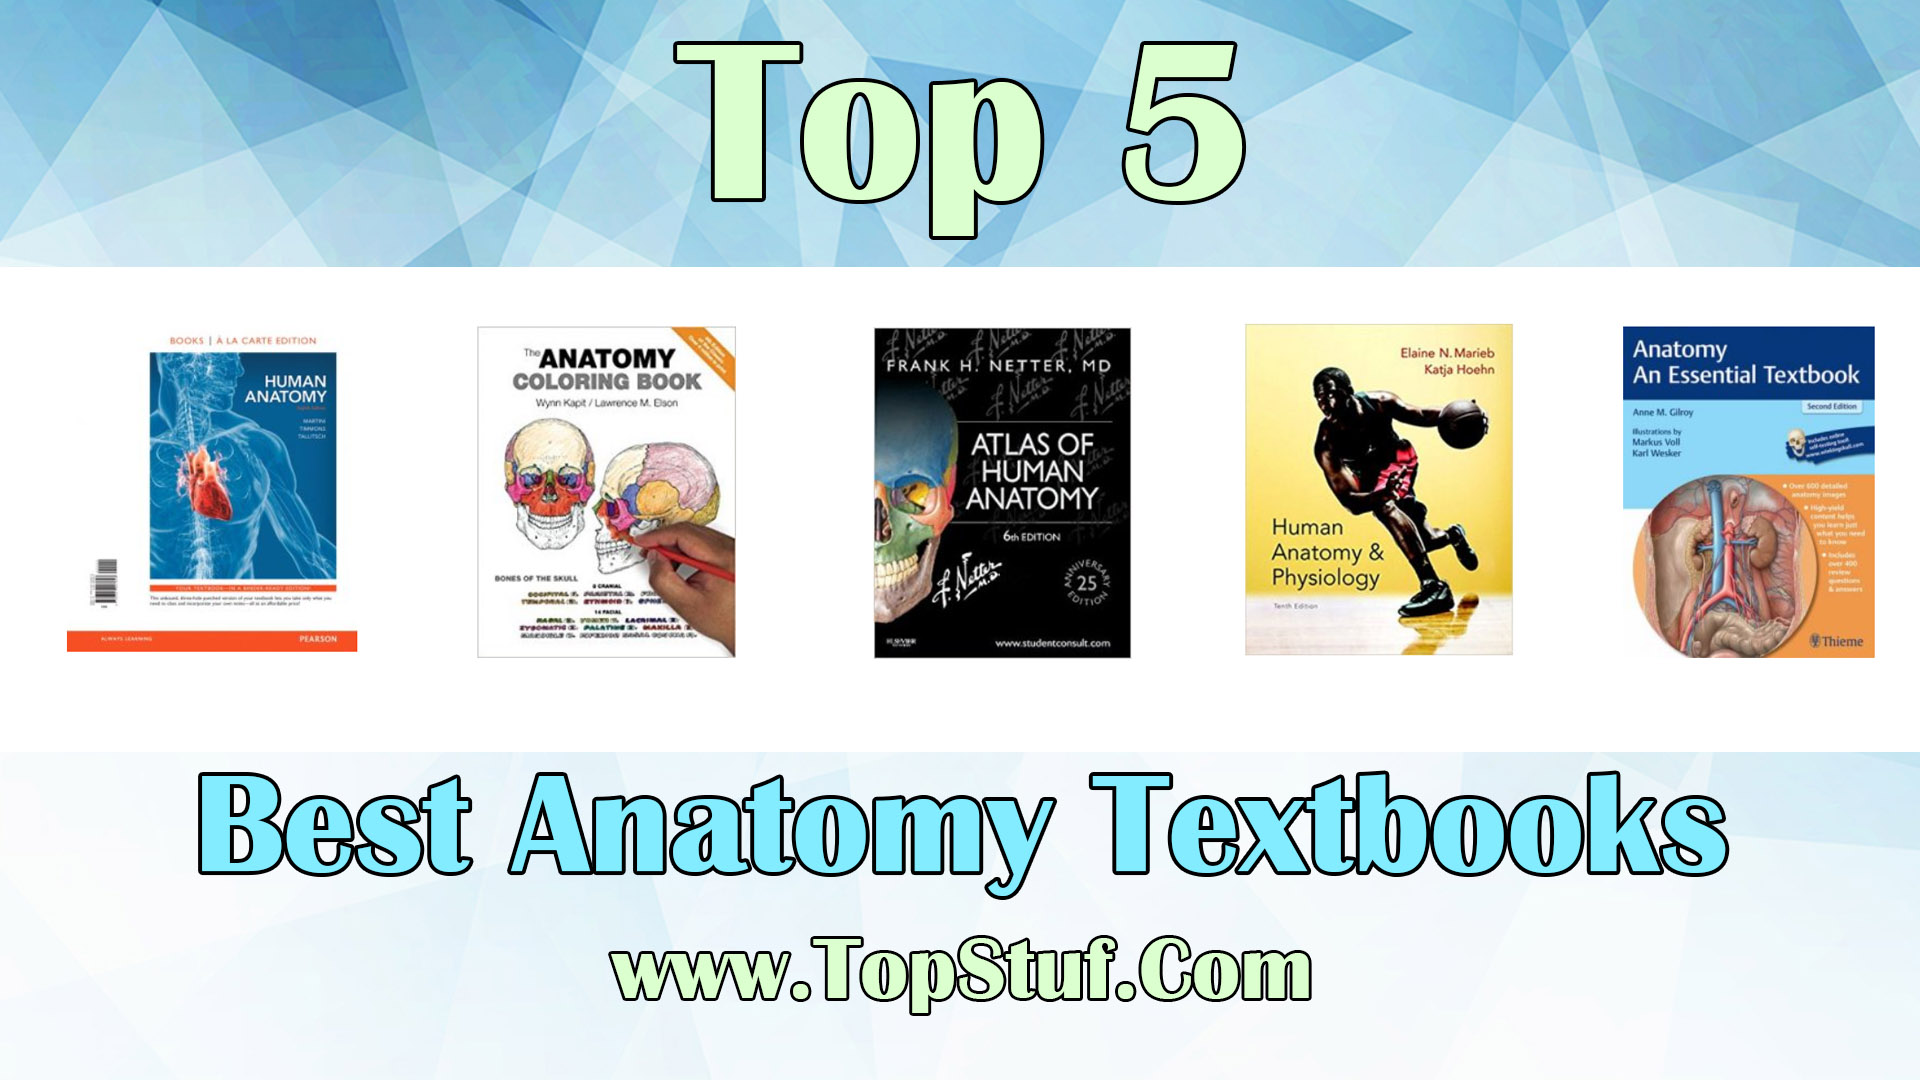 Best Anatomy Textbooks